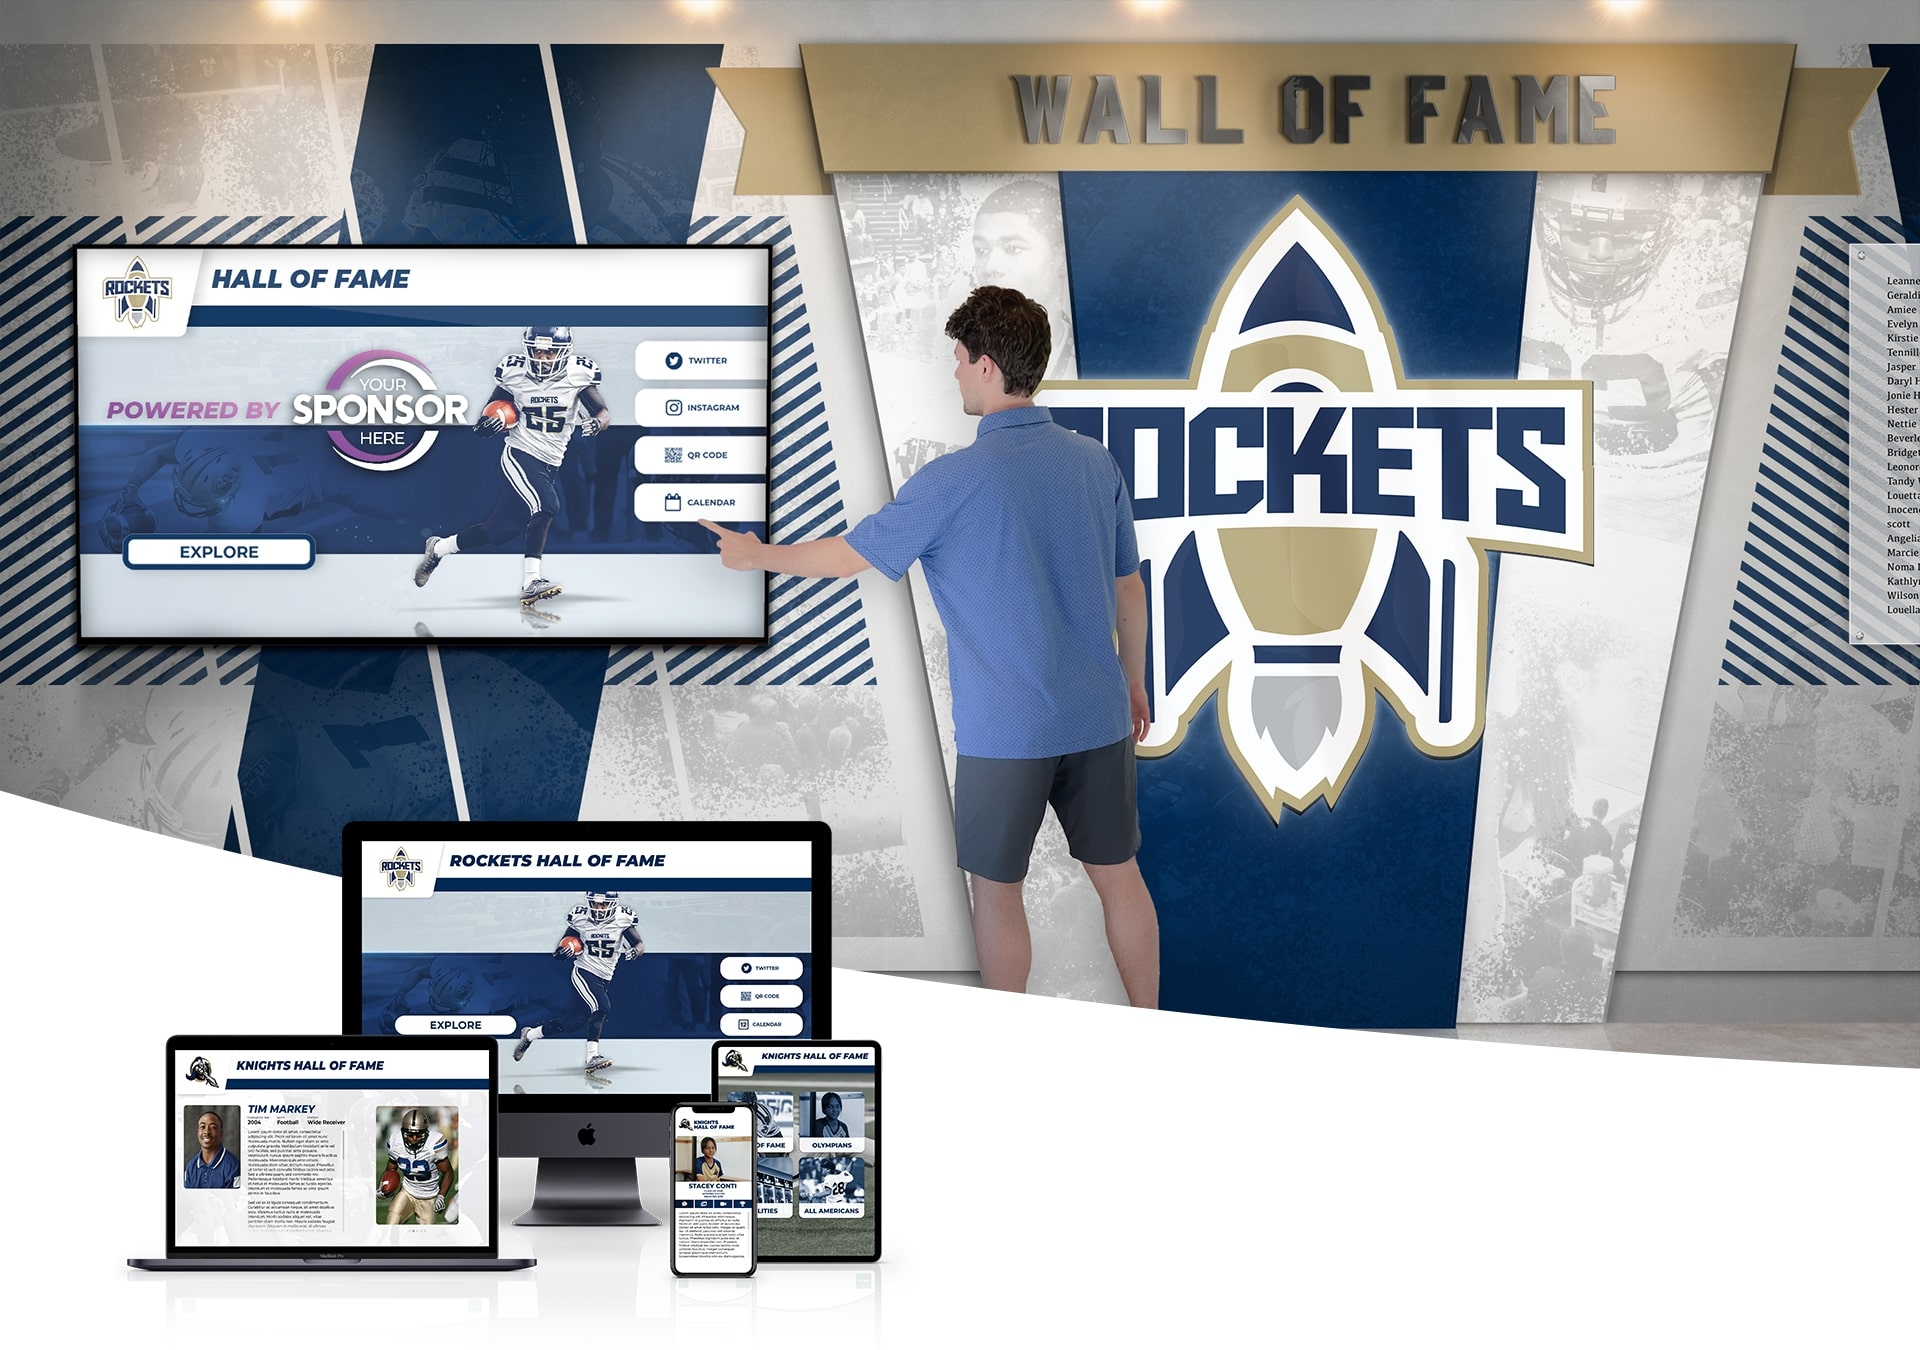 Touchscreen Hall of Fame for a Digital Wall of Fame